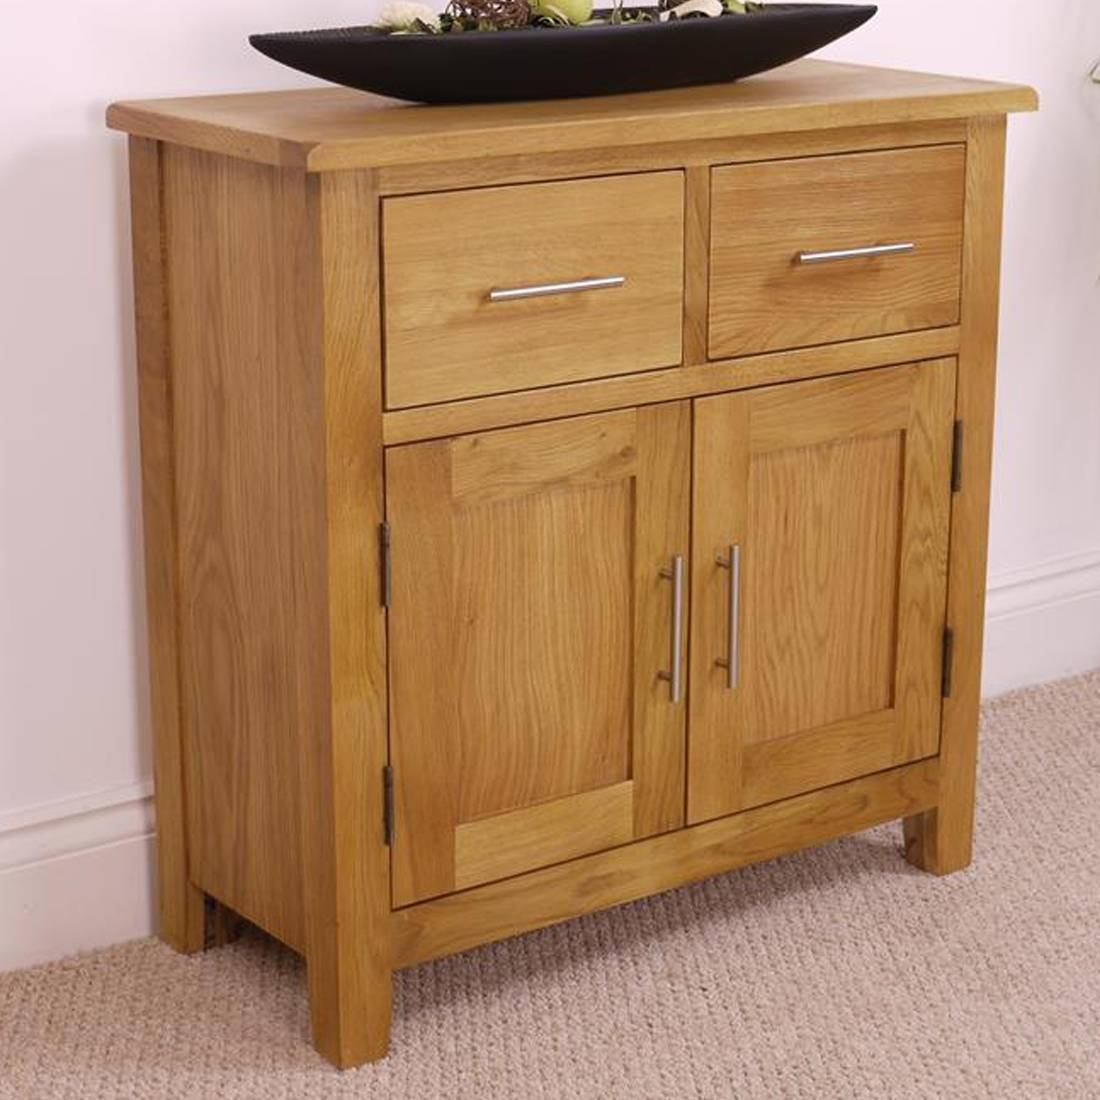 Nebraska Oak Sideboard / Solid Wood Small 2 Door 2 Drawer Storage Regarding Solid Wood Sideboards (Photo 15 of 15)